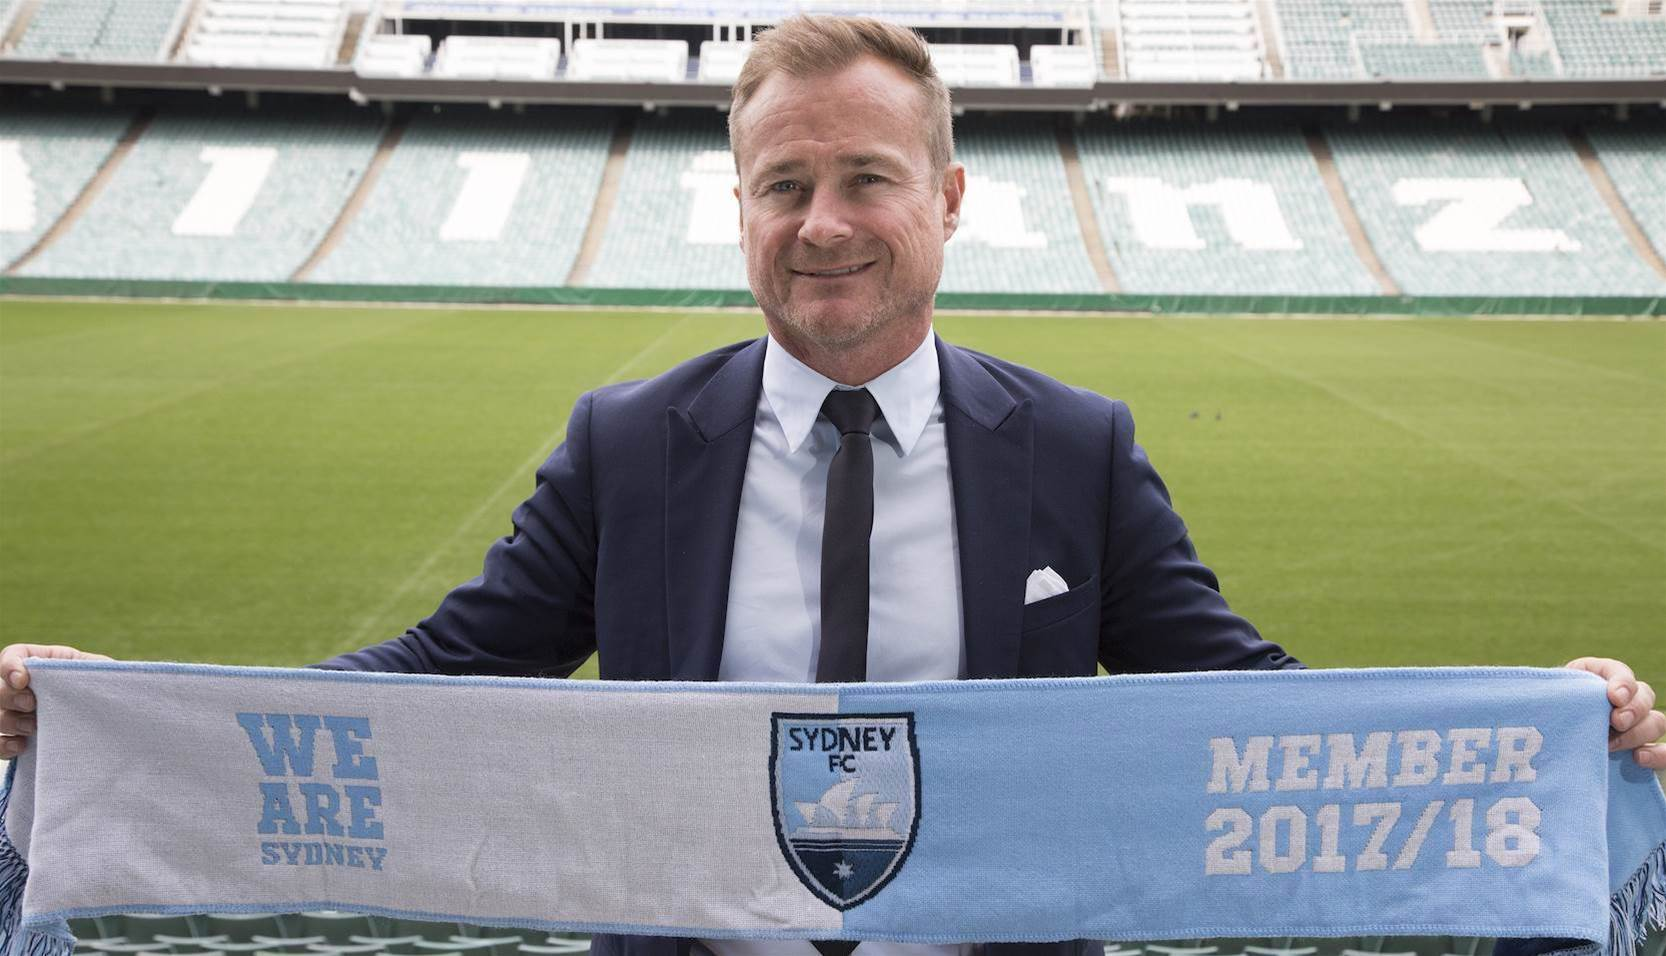 Sydney appoints ex-NSL player as CEO